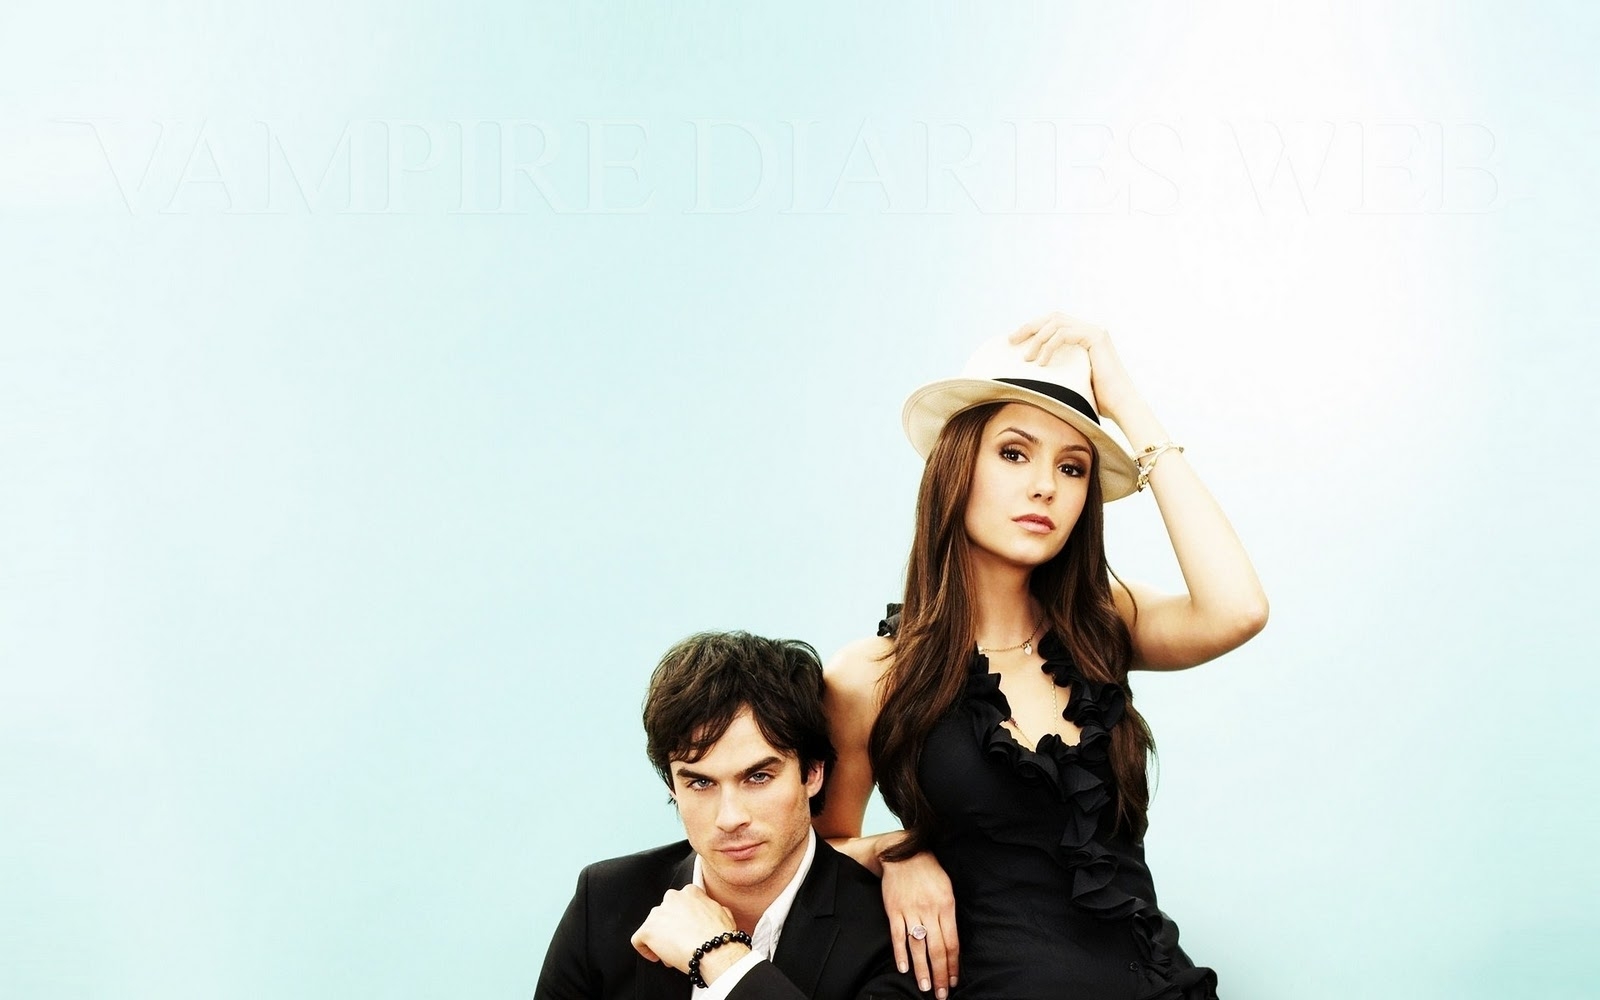 http://1.bp.blogspot.com/-Akv8_FiQBwM/TsQKr__AyLI/AAAAAAAAA1o/esjMwFolD8c/s1600/Vampire%20Diaries%20Couple%20Nina%20Dobrev%20and%20Ian%20Somerhalder%20HD%20Wallpaper%20-%20LoveWallpapers4u.Blogspot.Com.jpg